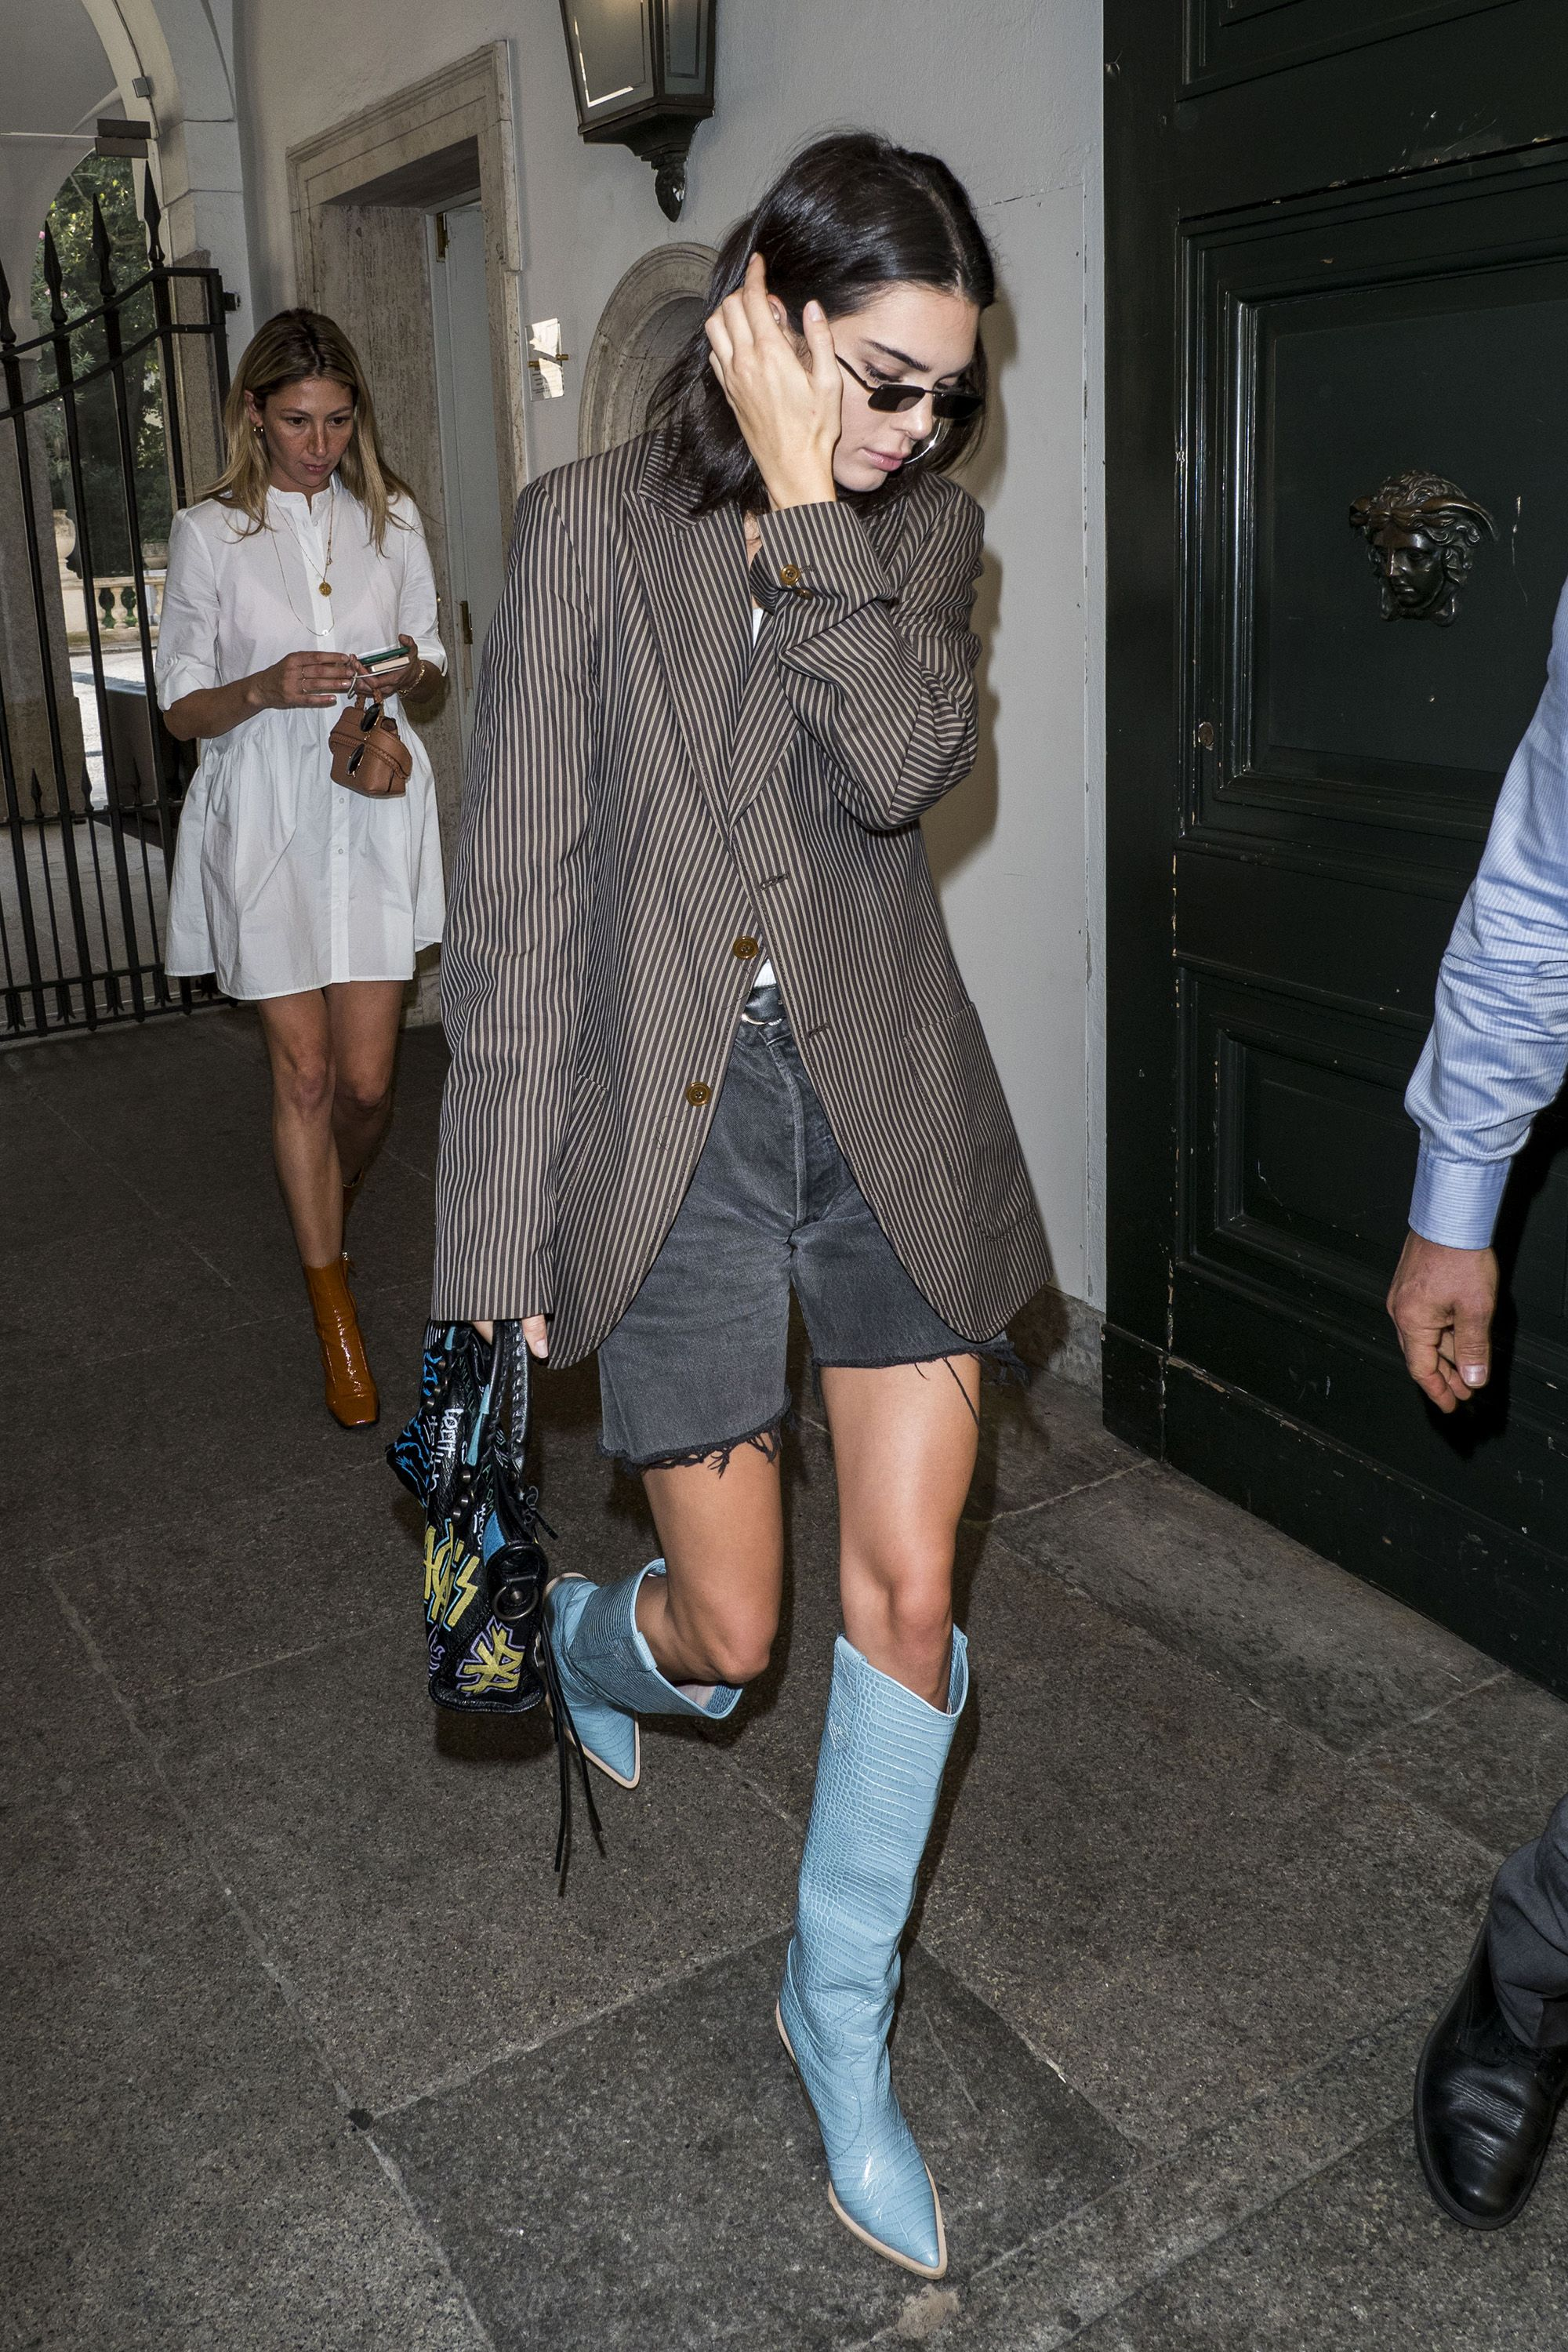 a507b799762bc Kendall Jenner Style - Kendall Jenner s Best Outfits